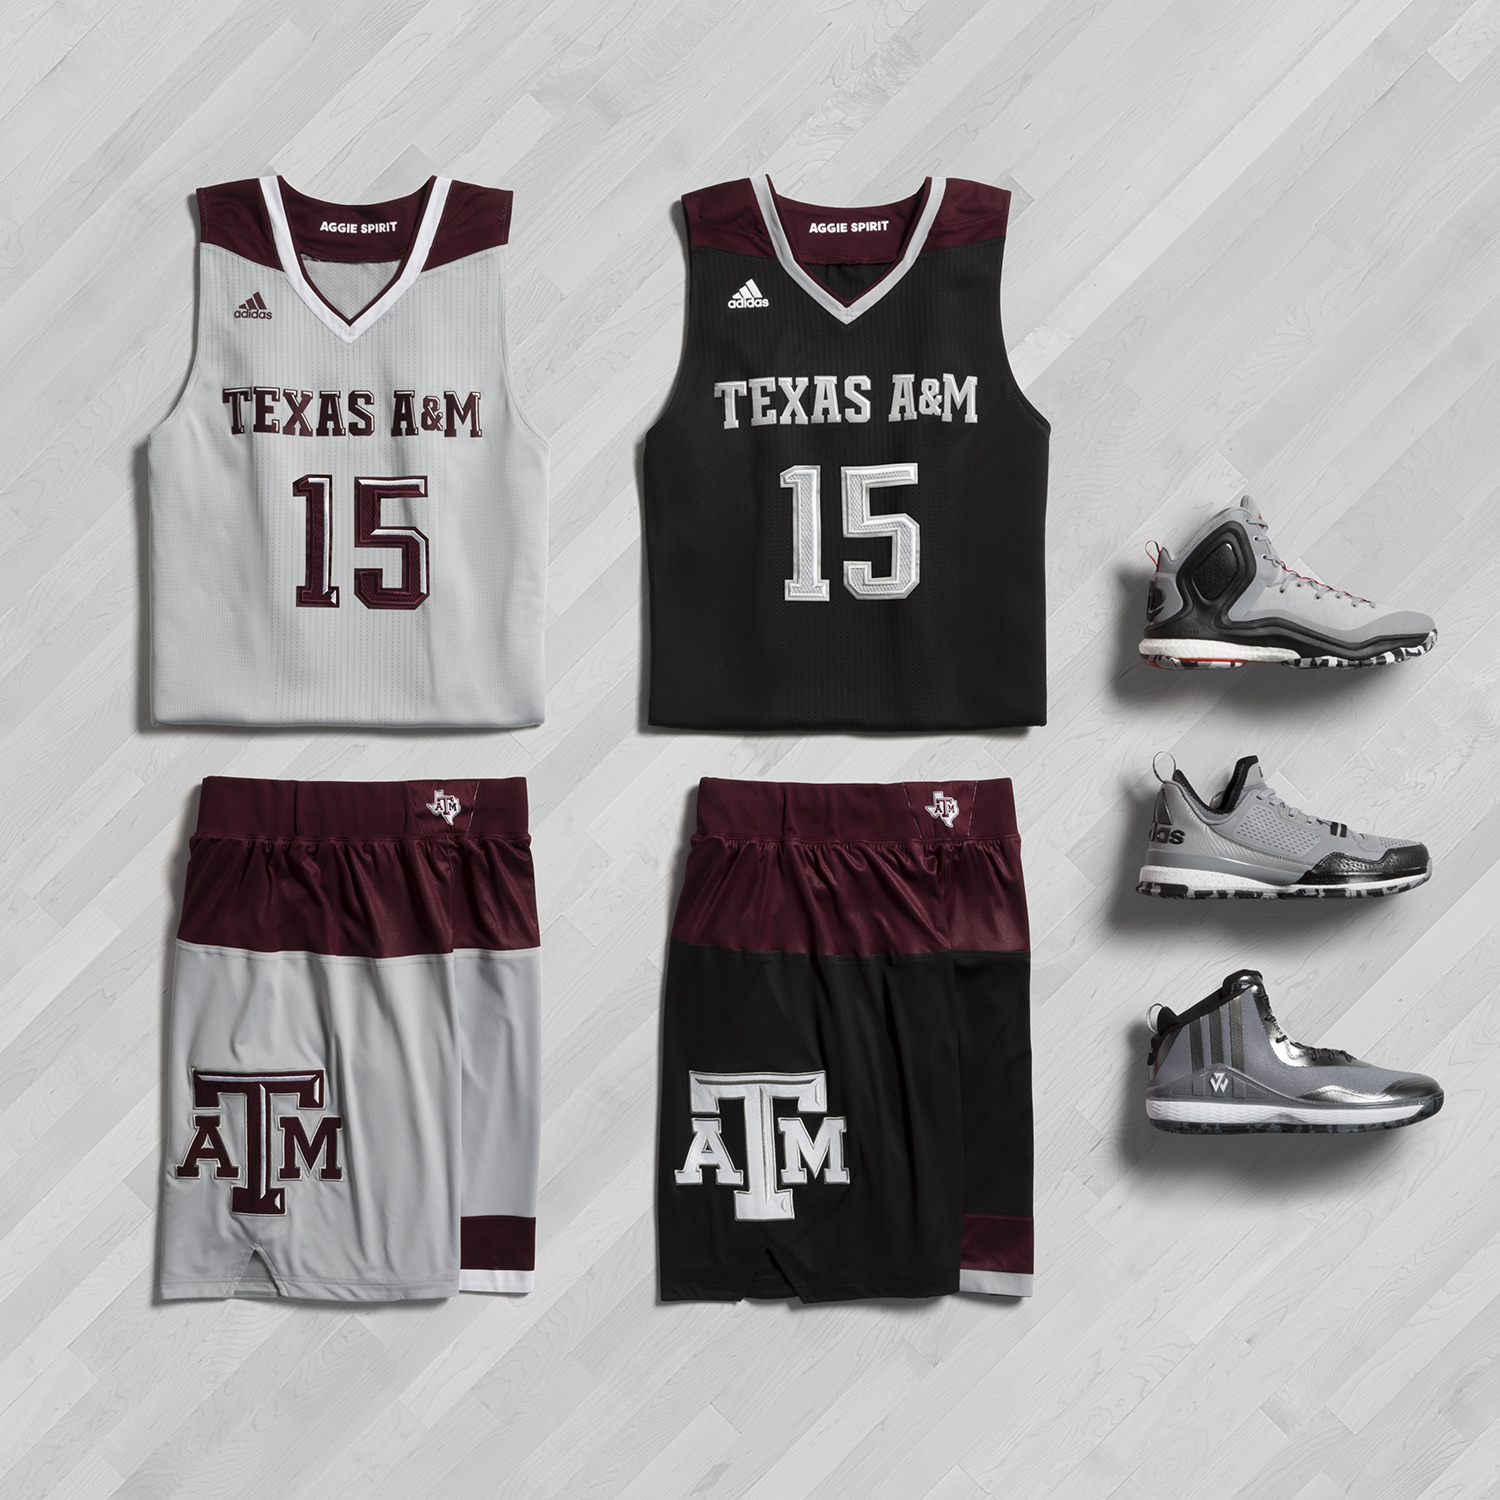 Texas A&M_Hero_Sq